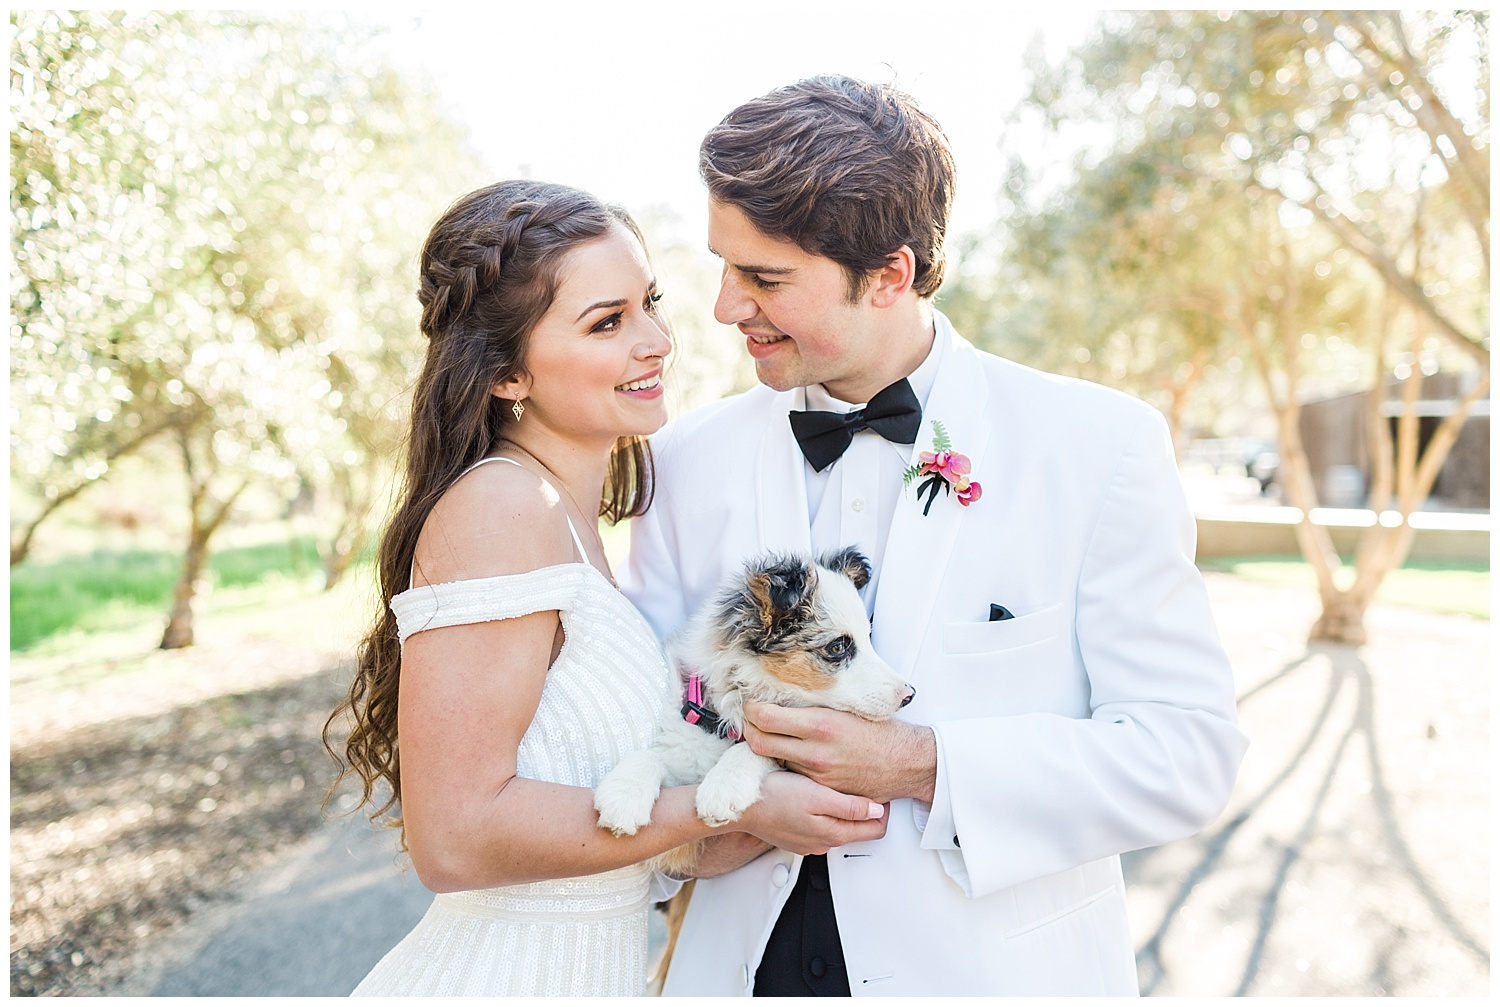 Epiphany-bride-and-groom-puppy-portrait.jpg